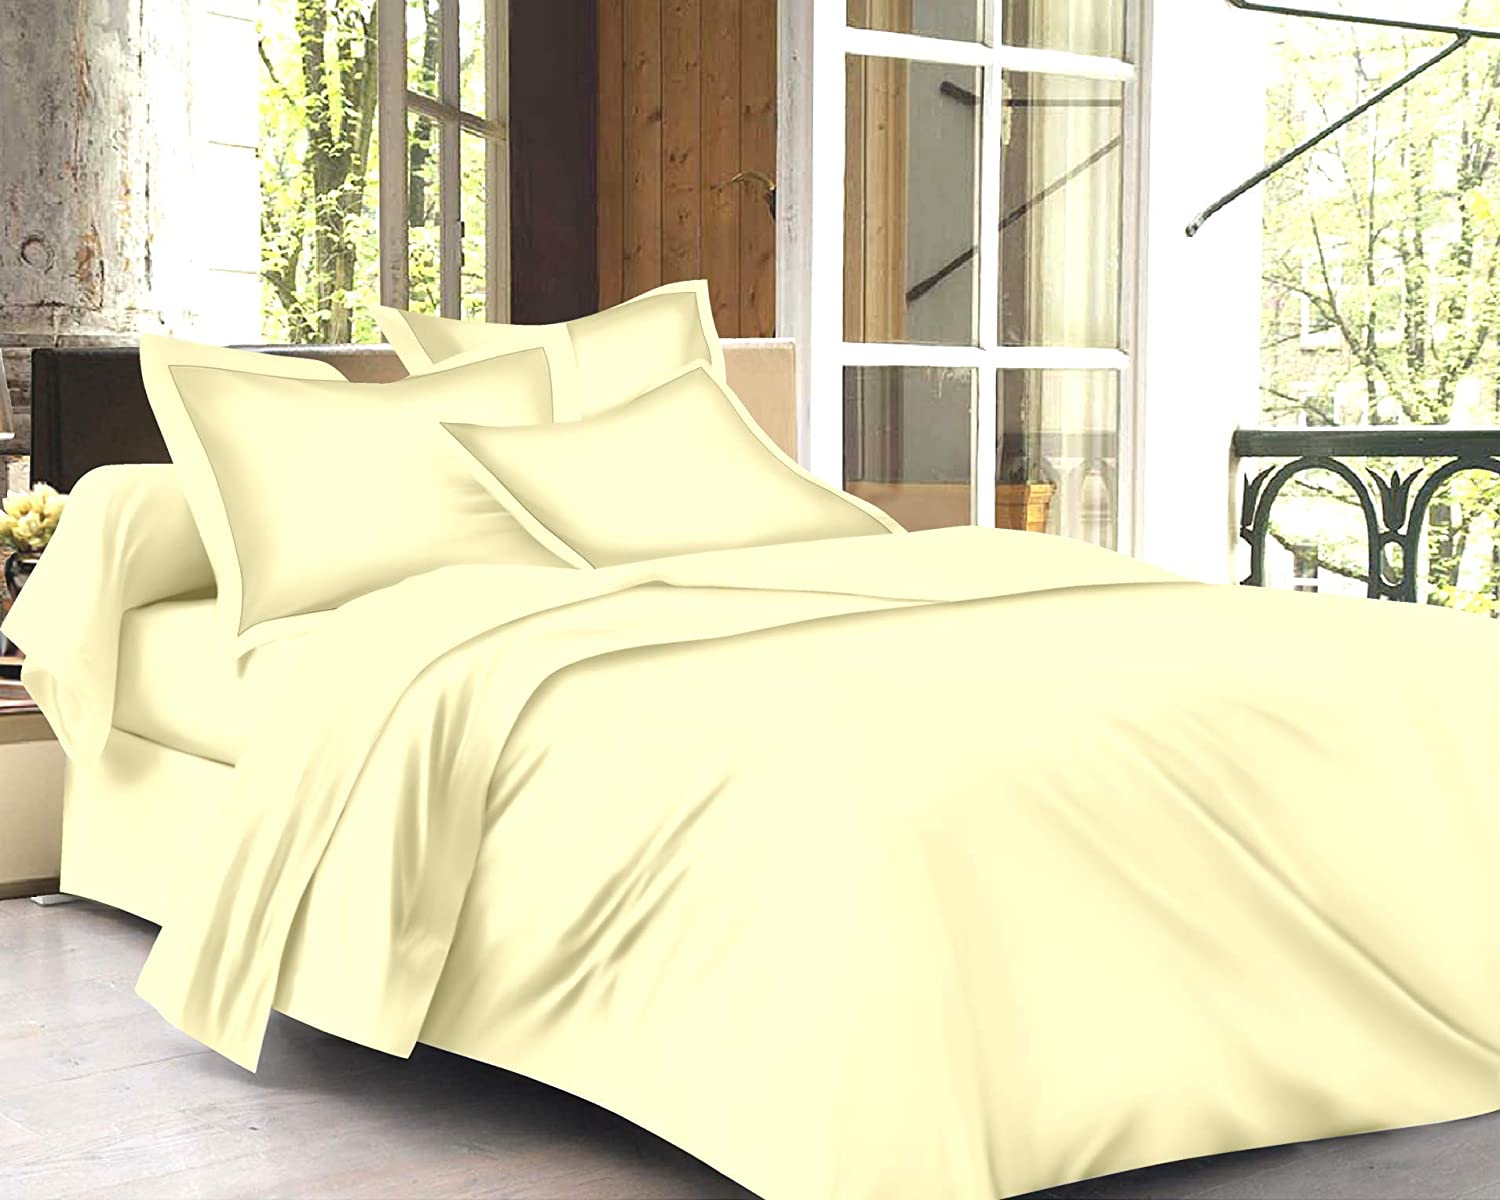 Trance Home Linen Cotton 400 TC Solid Plain Duvet Covers